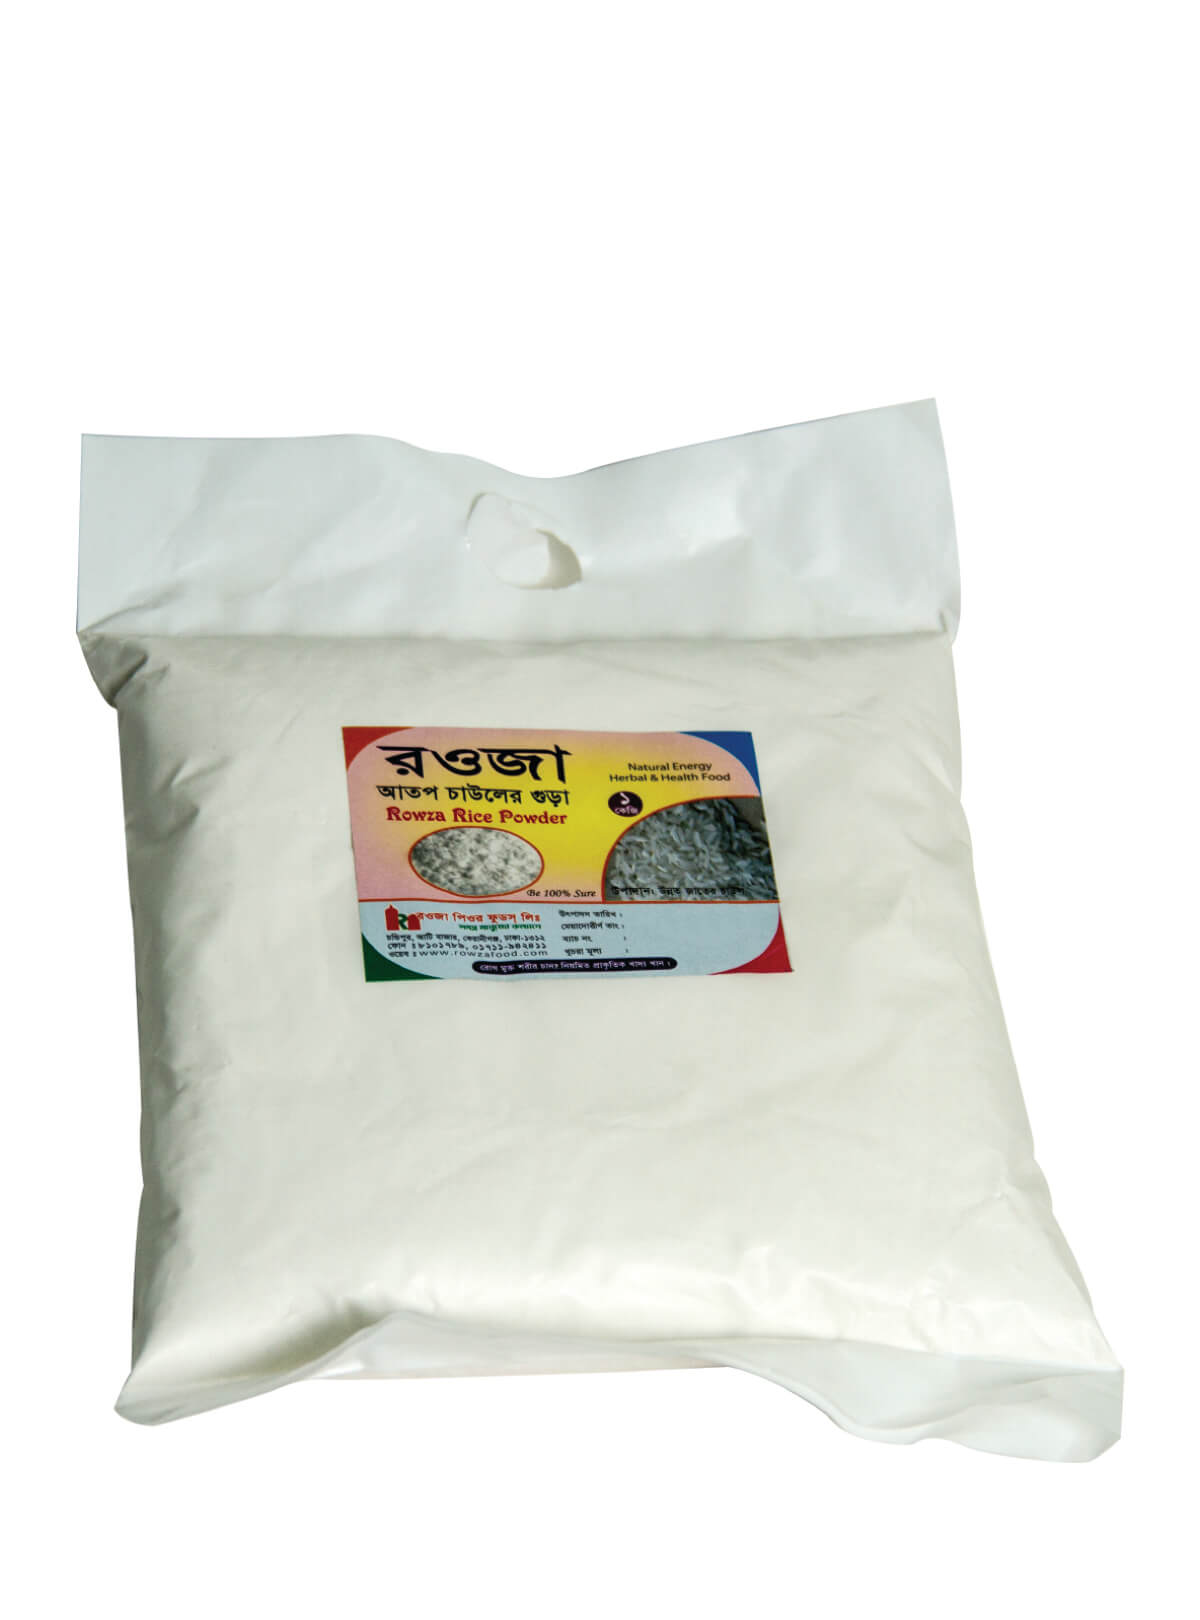 Rowza Sunned Rice Powder (Atop caler gura) 1 Kg